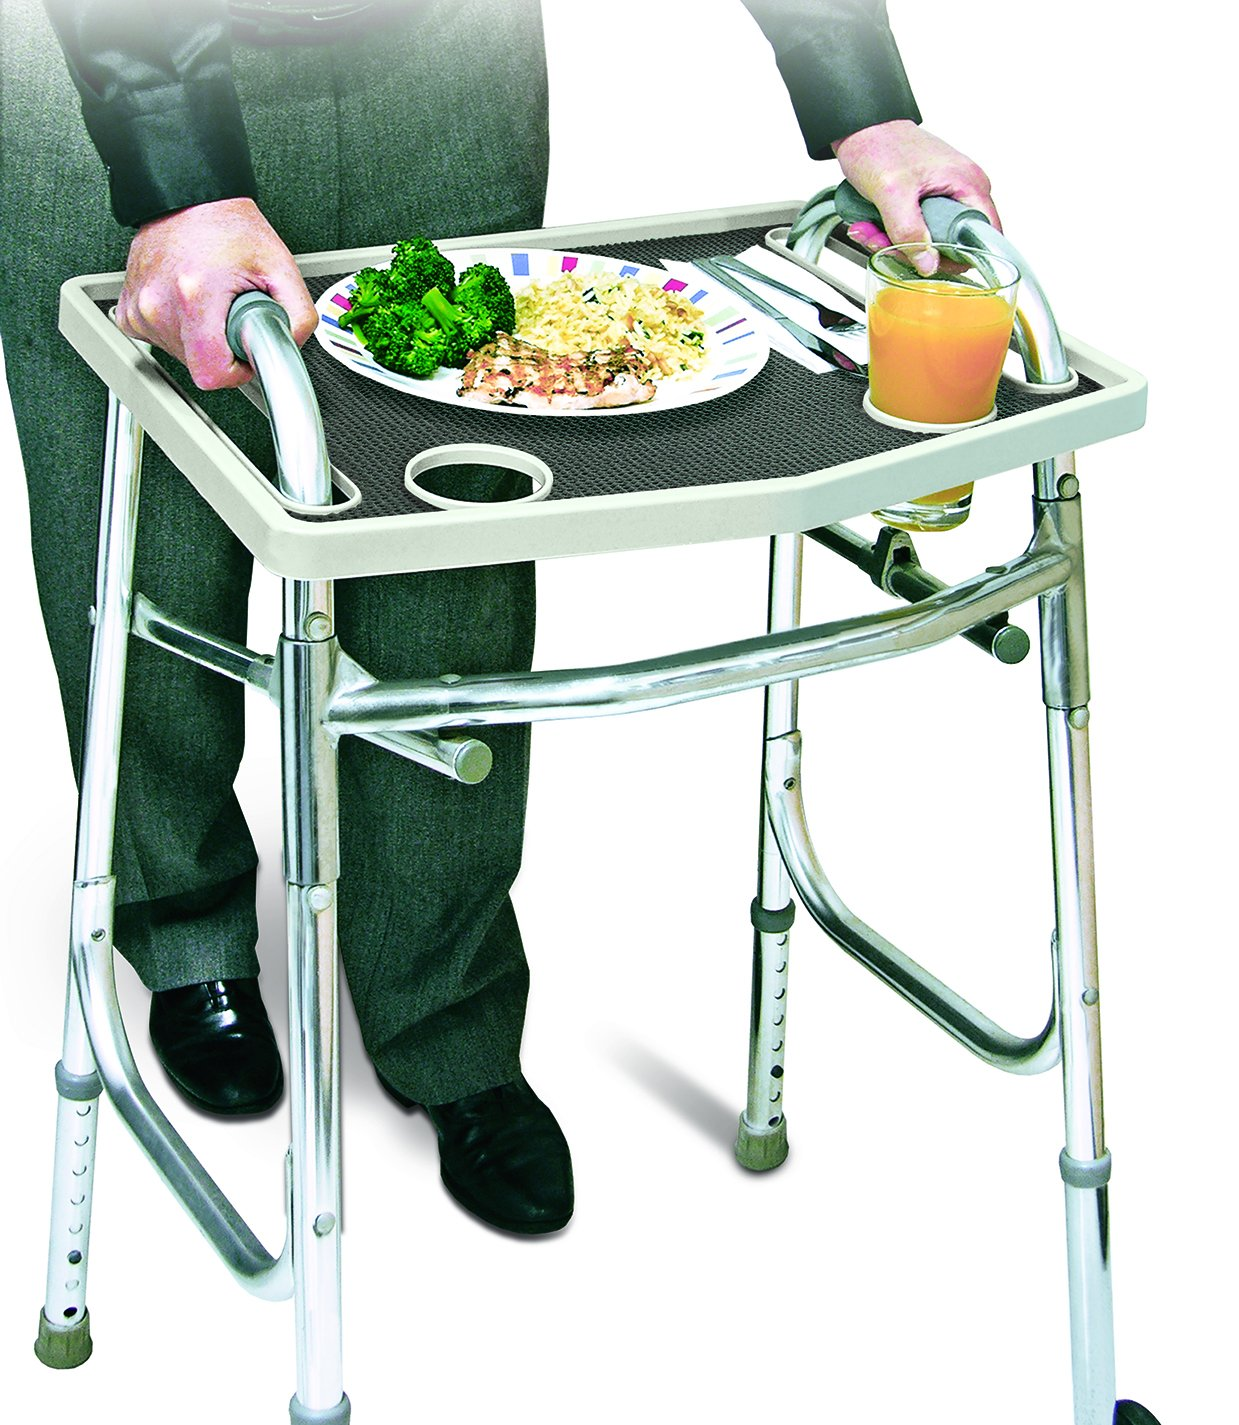 Universal Walker Tray Table With Non Slip Grip Mat - Gray,20.75'' by Walker